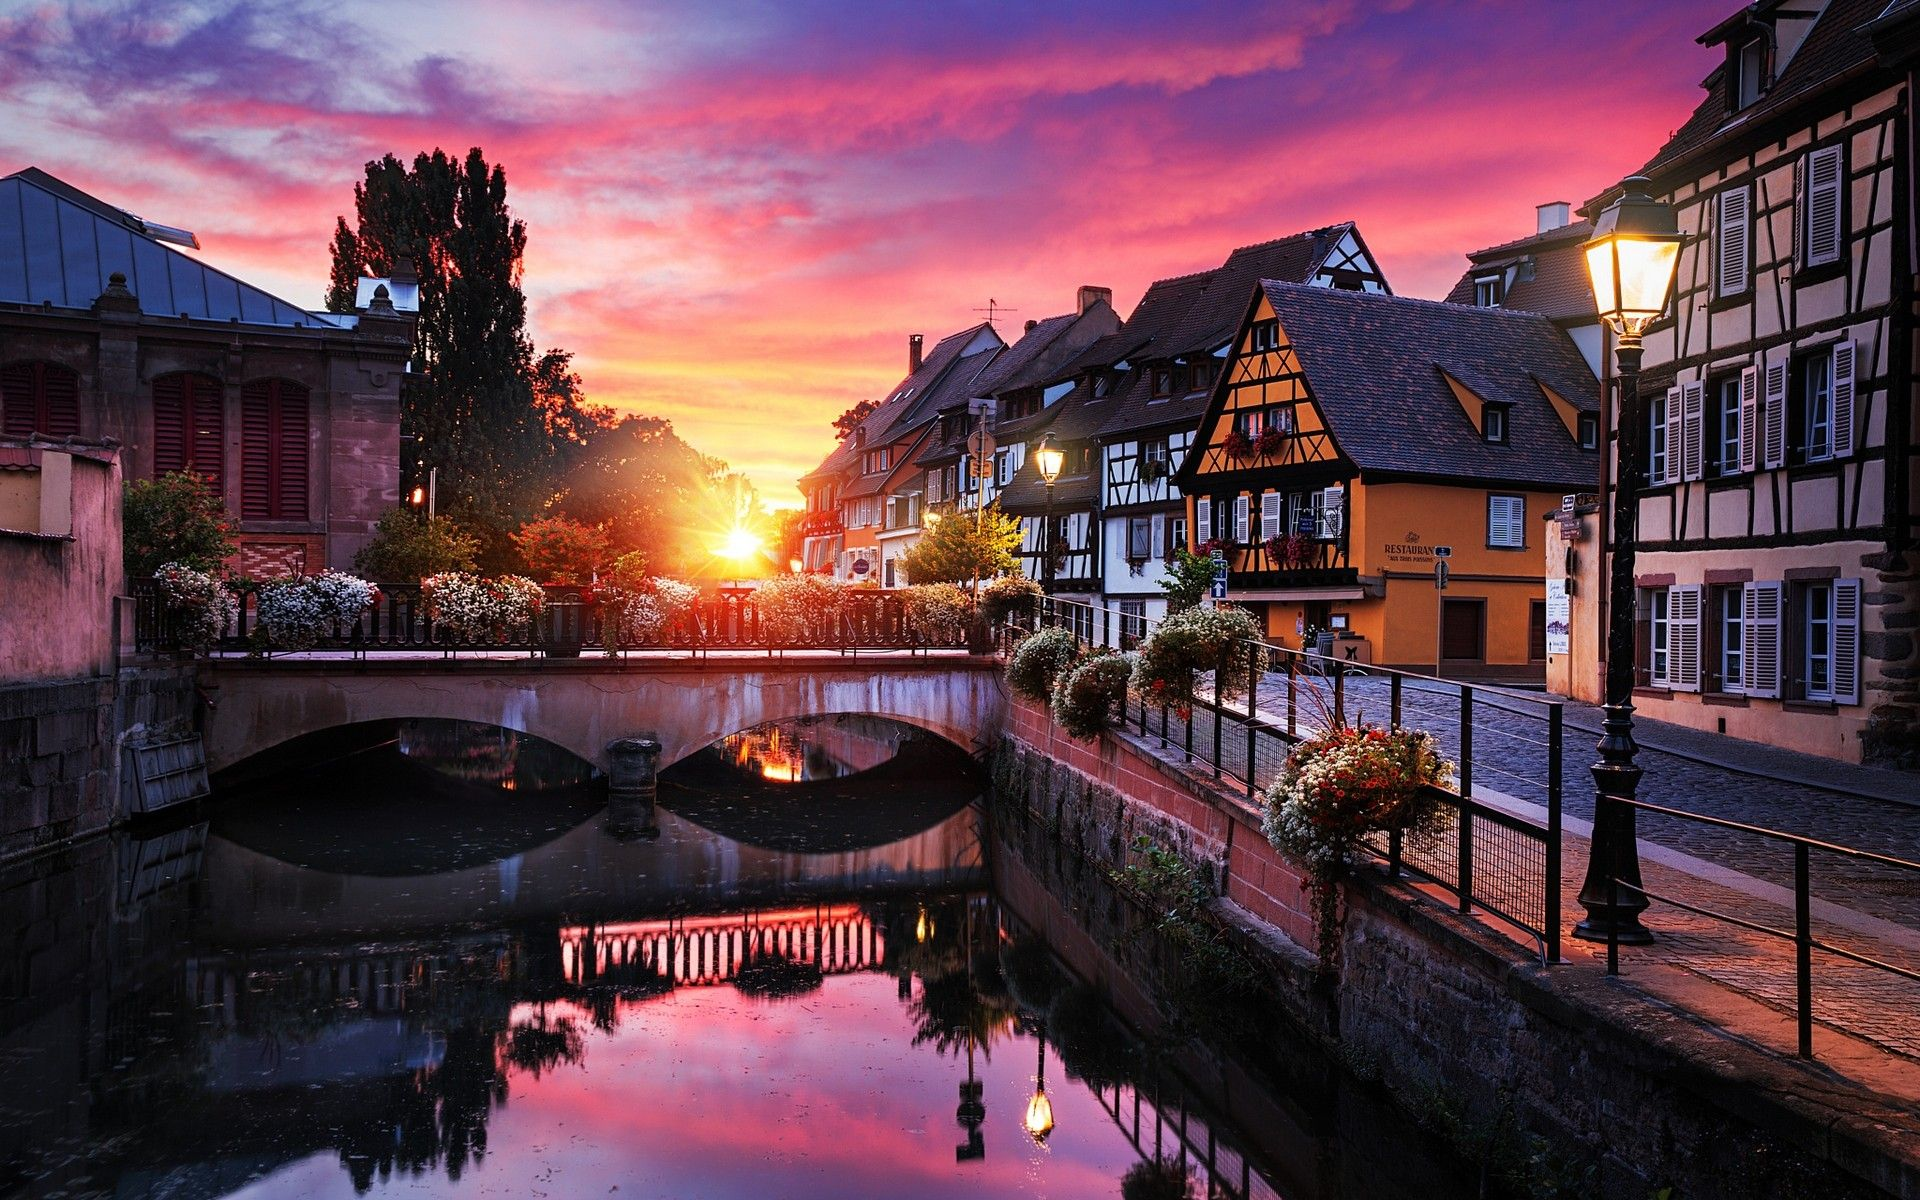 General 1920x1200 Landscape Nature Sunrise City Canal Bridge House  Reflection Trees France Lantern Street Cobblestone Water